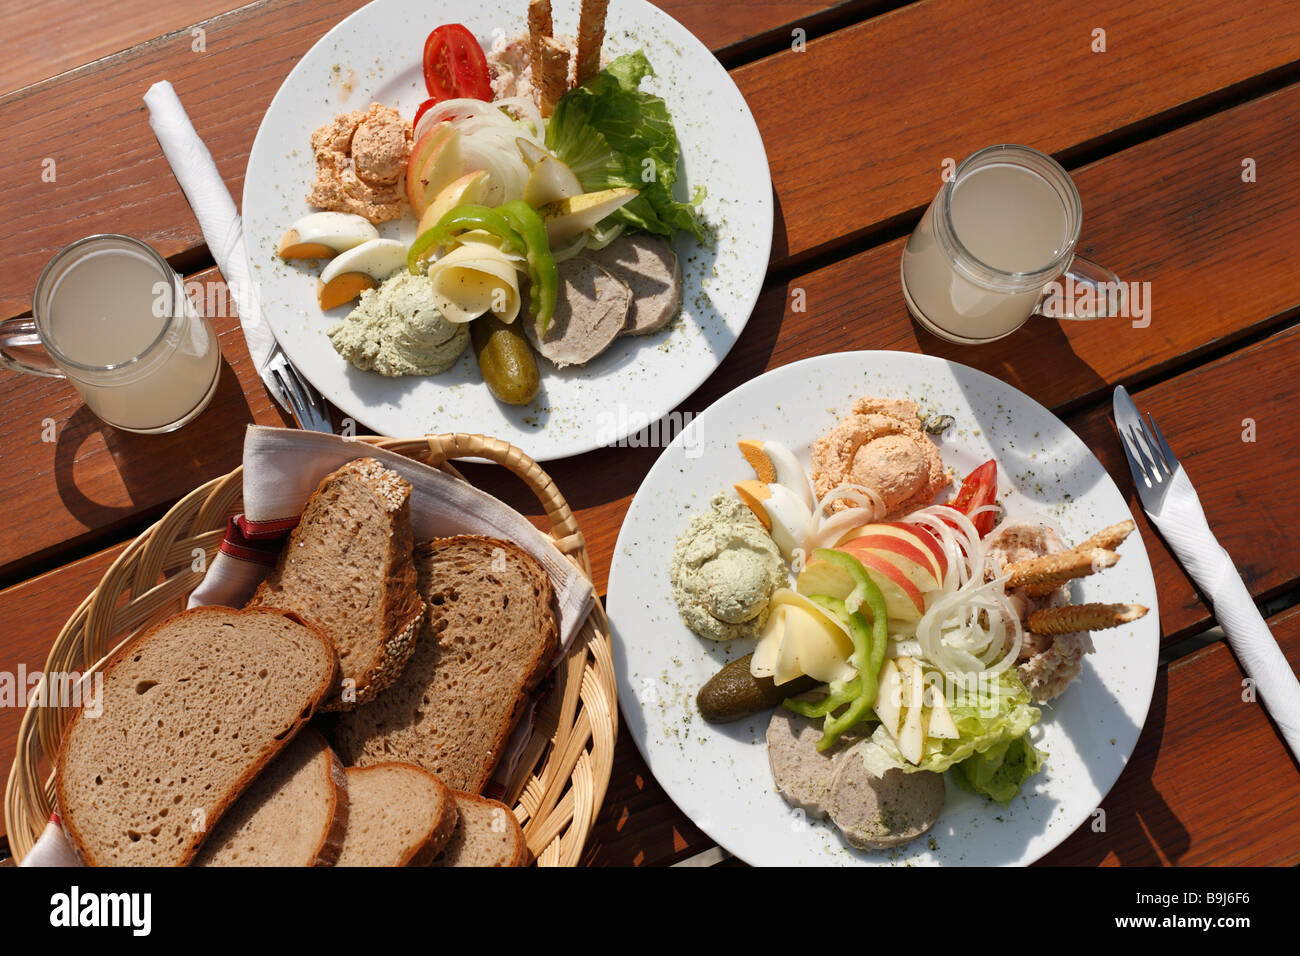 Dish with spreads in Buschenschank, bar, with 'Sturm', Federweisser, Styria, Austria, Europe - Stock Image